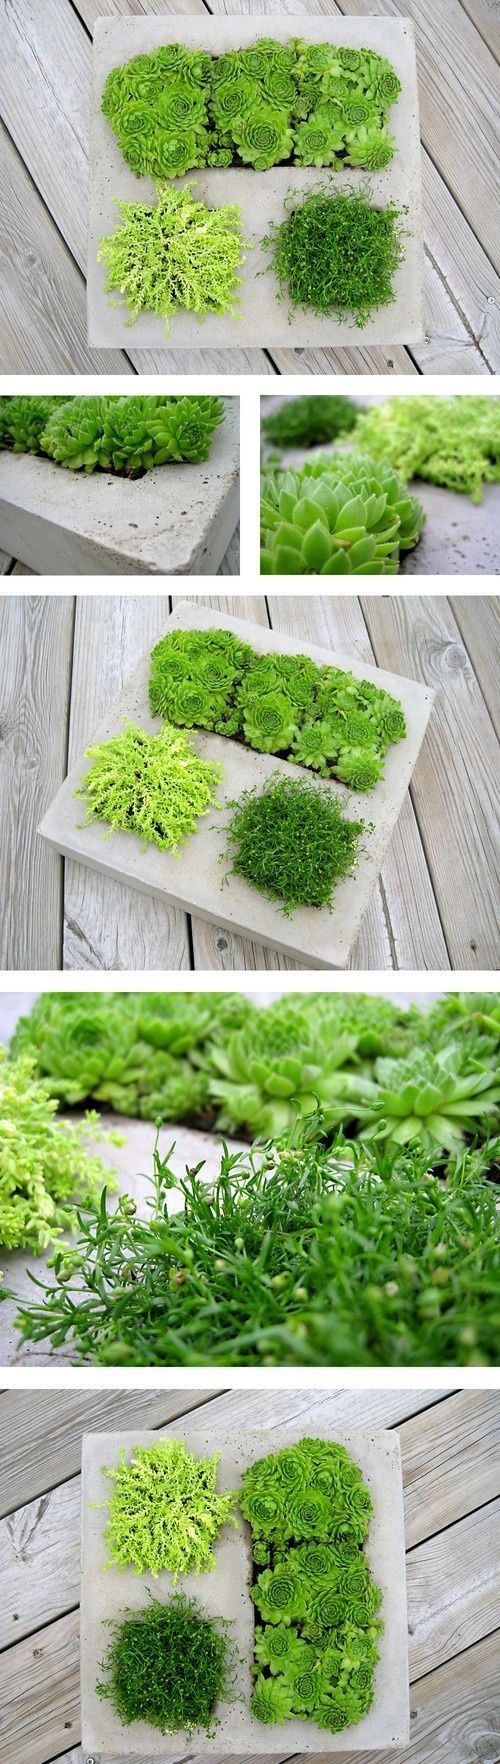 Top 30 DIY Concrete Projects For The Crafty Side Of You_homesthetics.net (3)